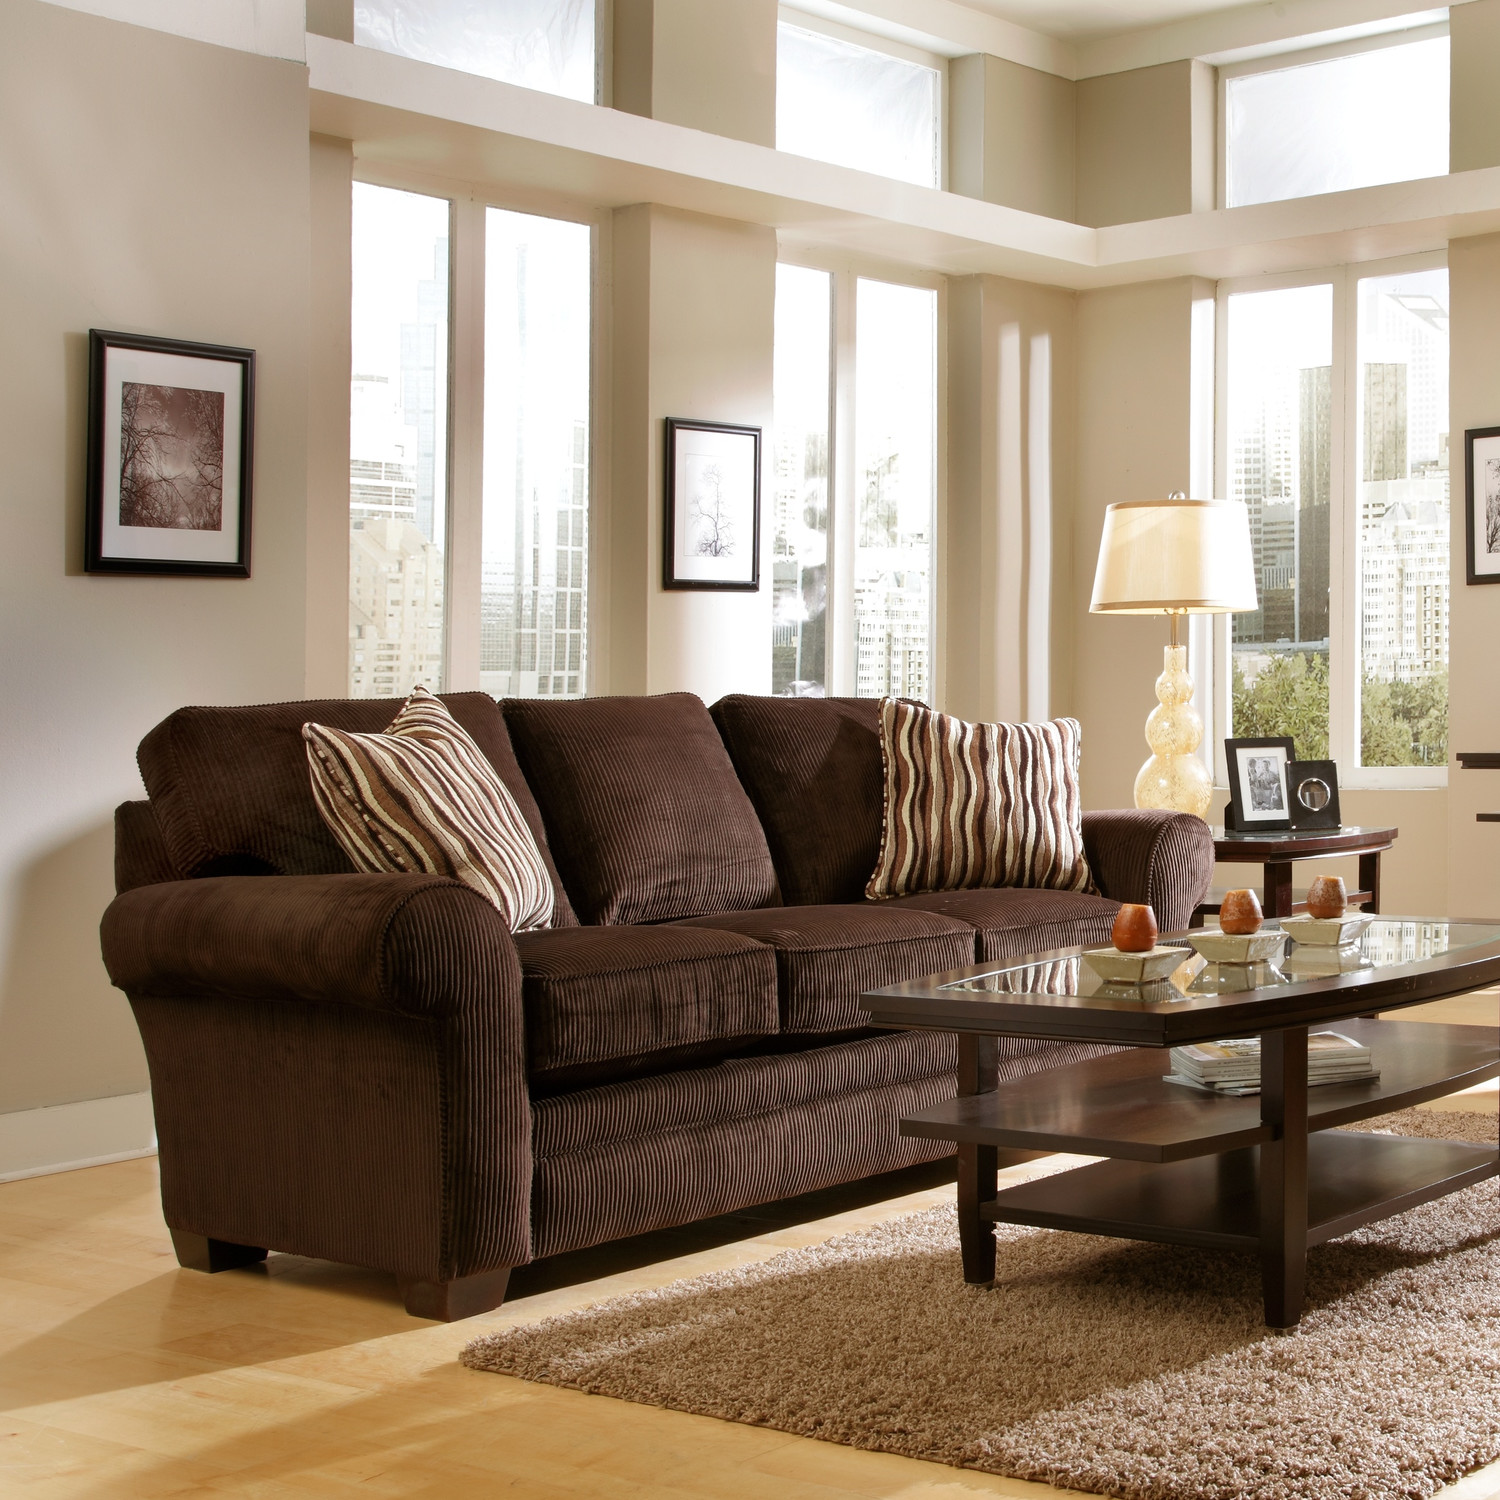 Pretty Dark Brown Sofa By Broyhill Furniture On Wooden Floor With Tan Rug For Living Room Decor Ideas